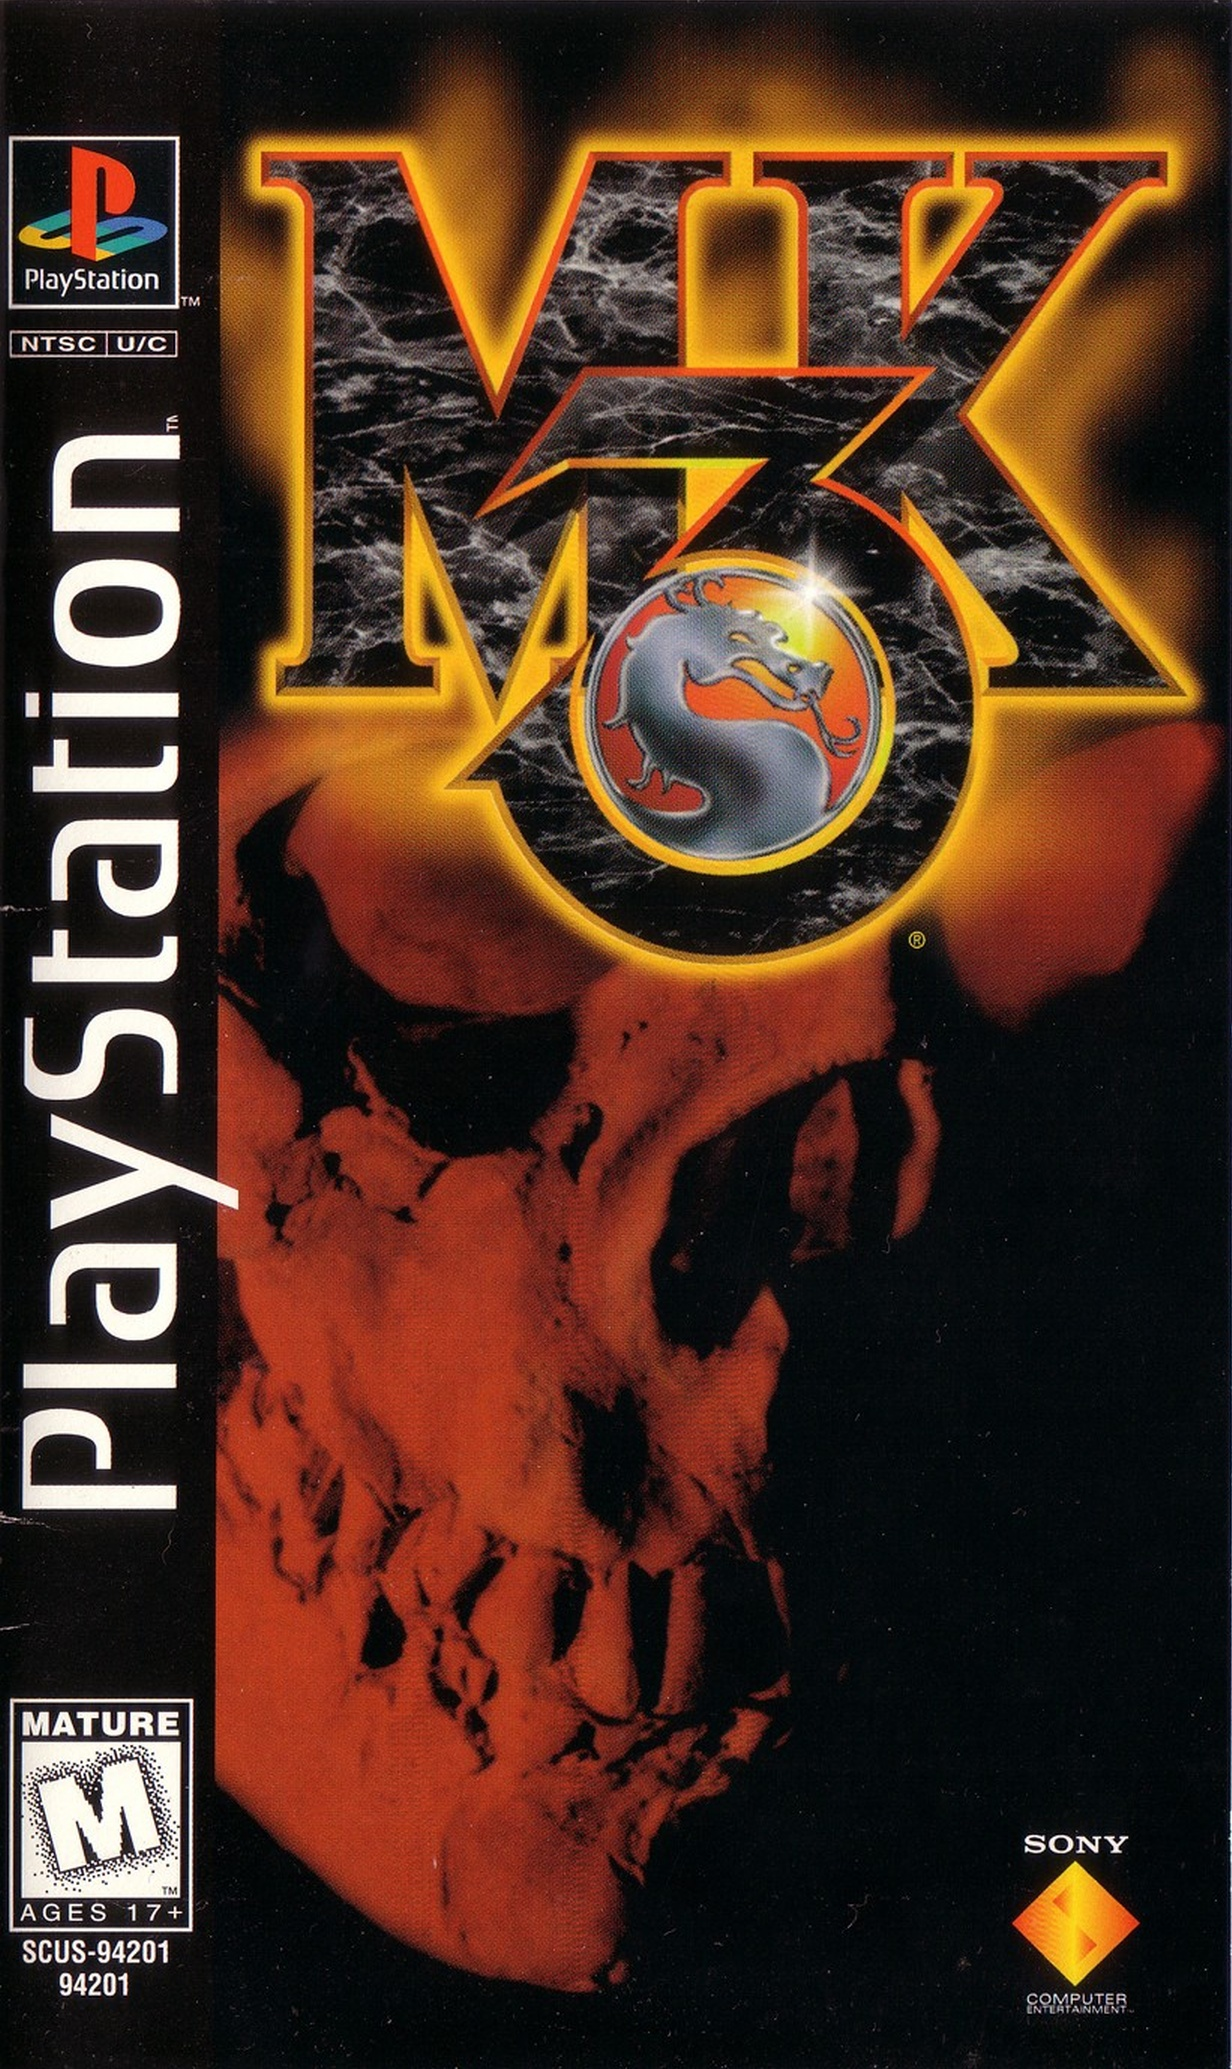 Mortal Kombat 3 [SCUS-94201] ROM - Playstation (PS1) | Emulator Games